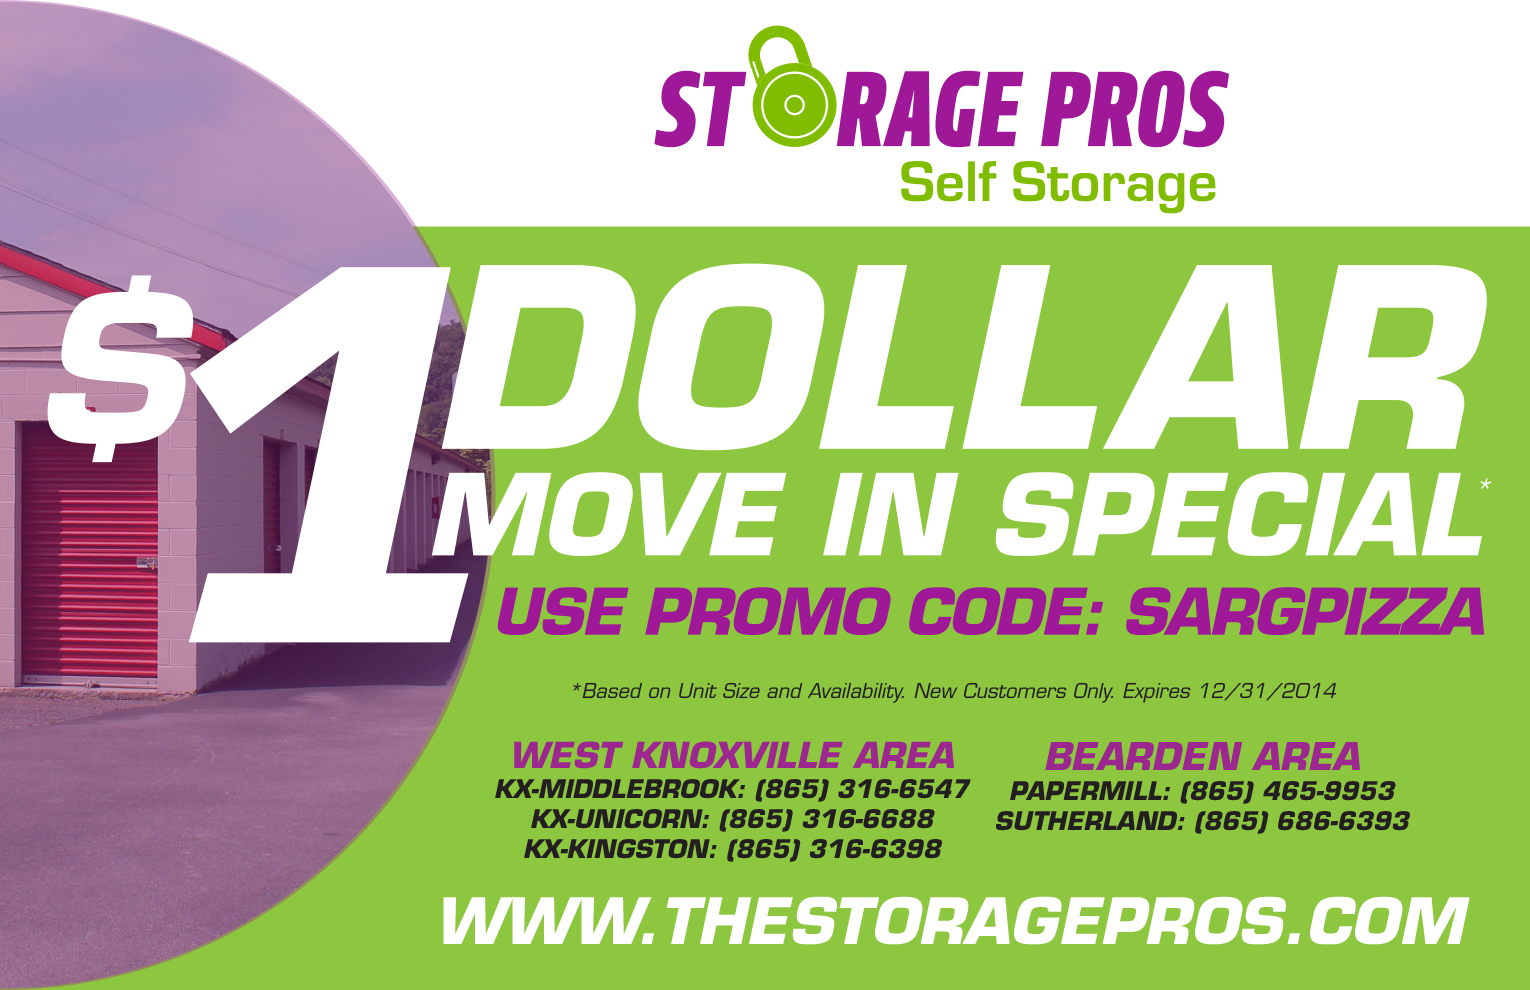 Exceptional Storage Pros: Knoxville Print Ad